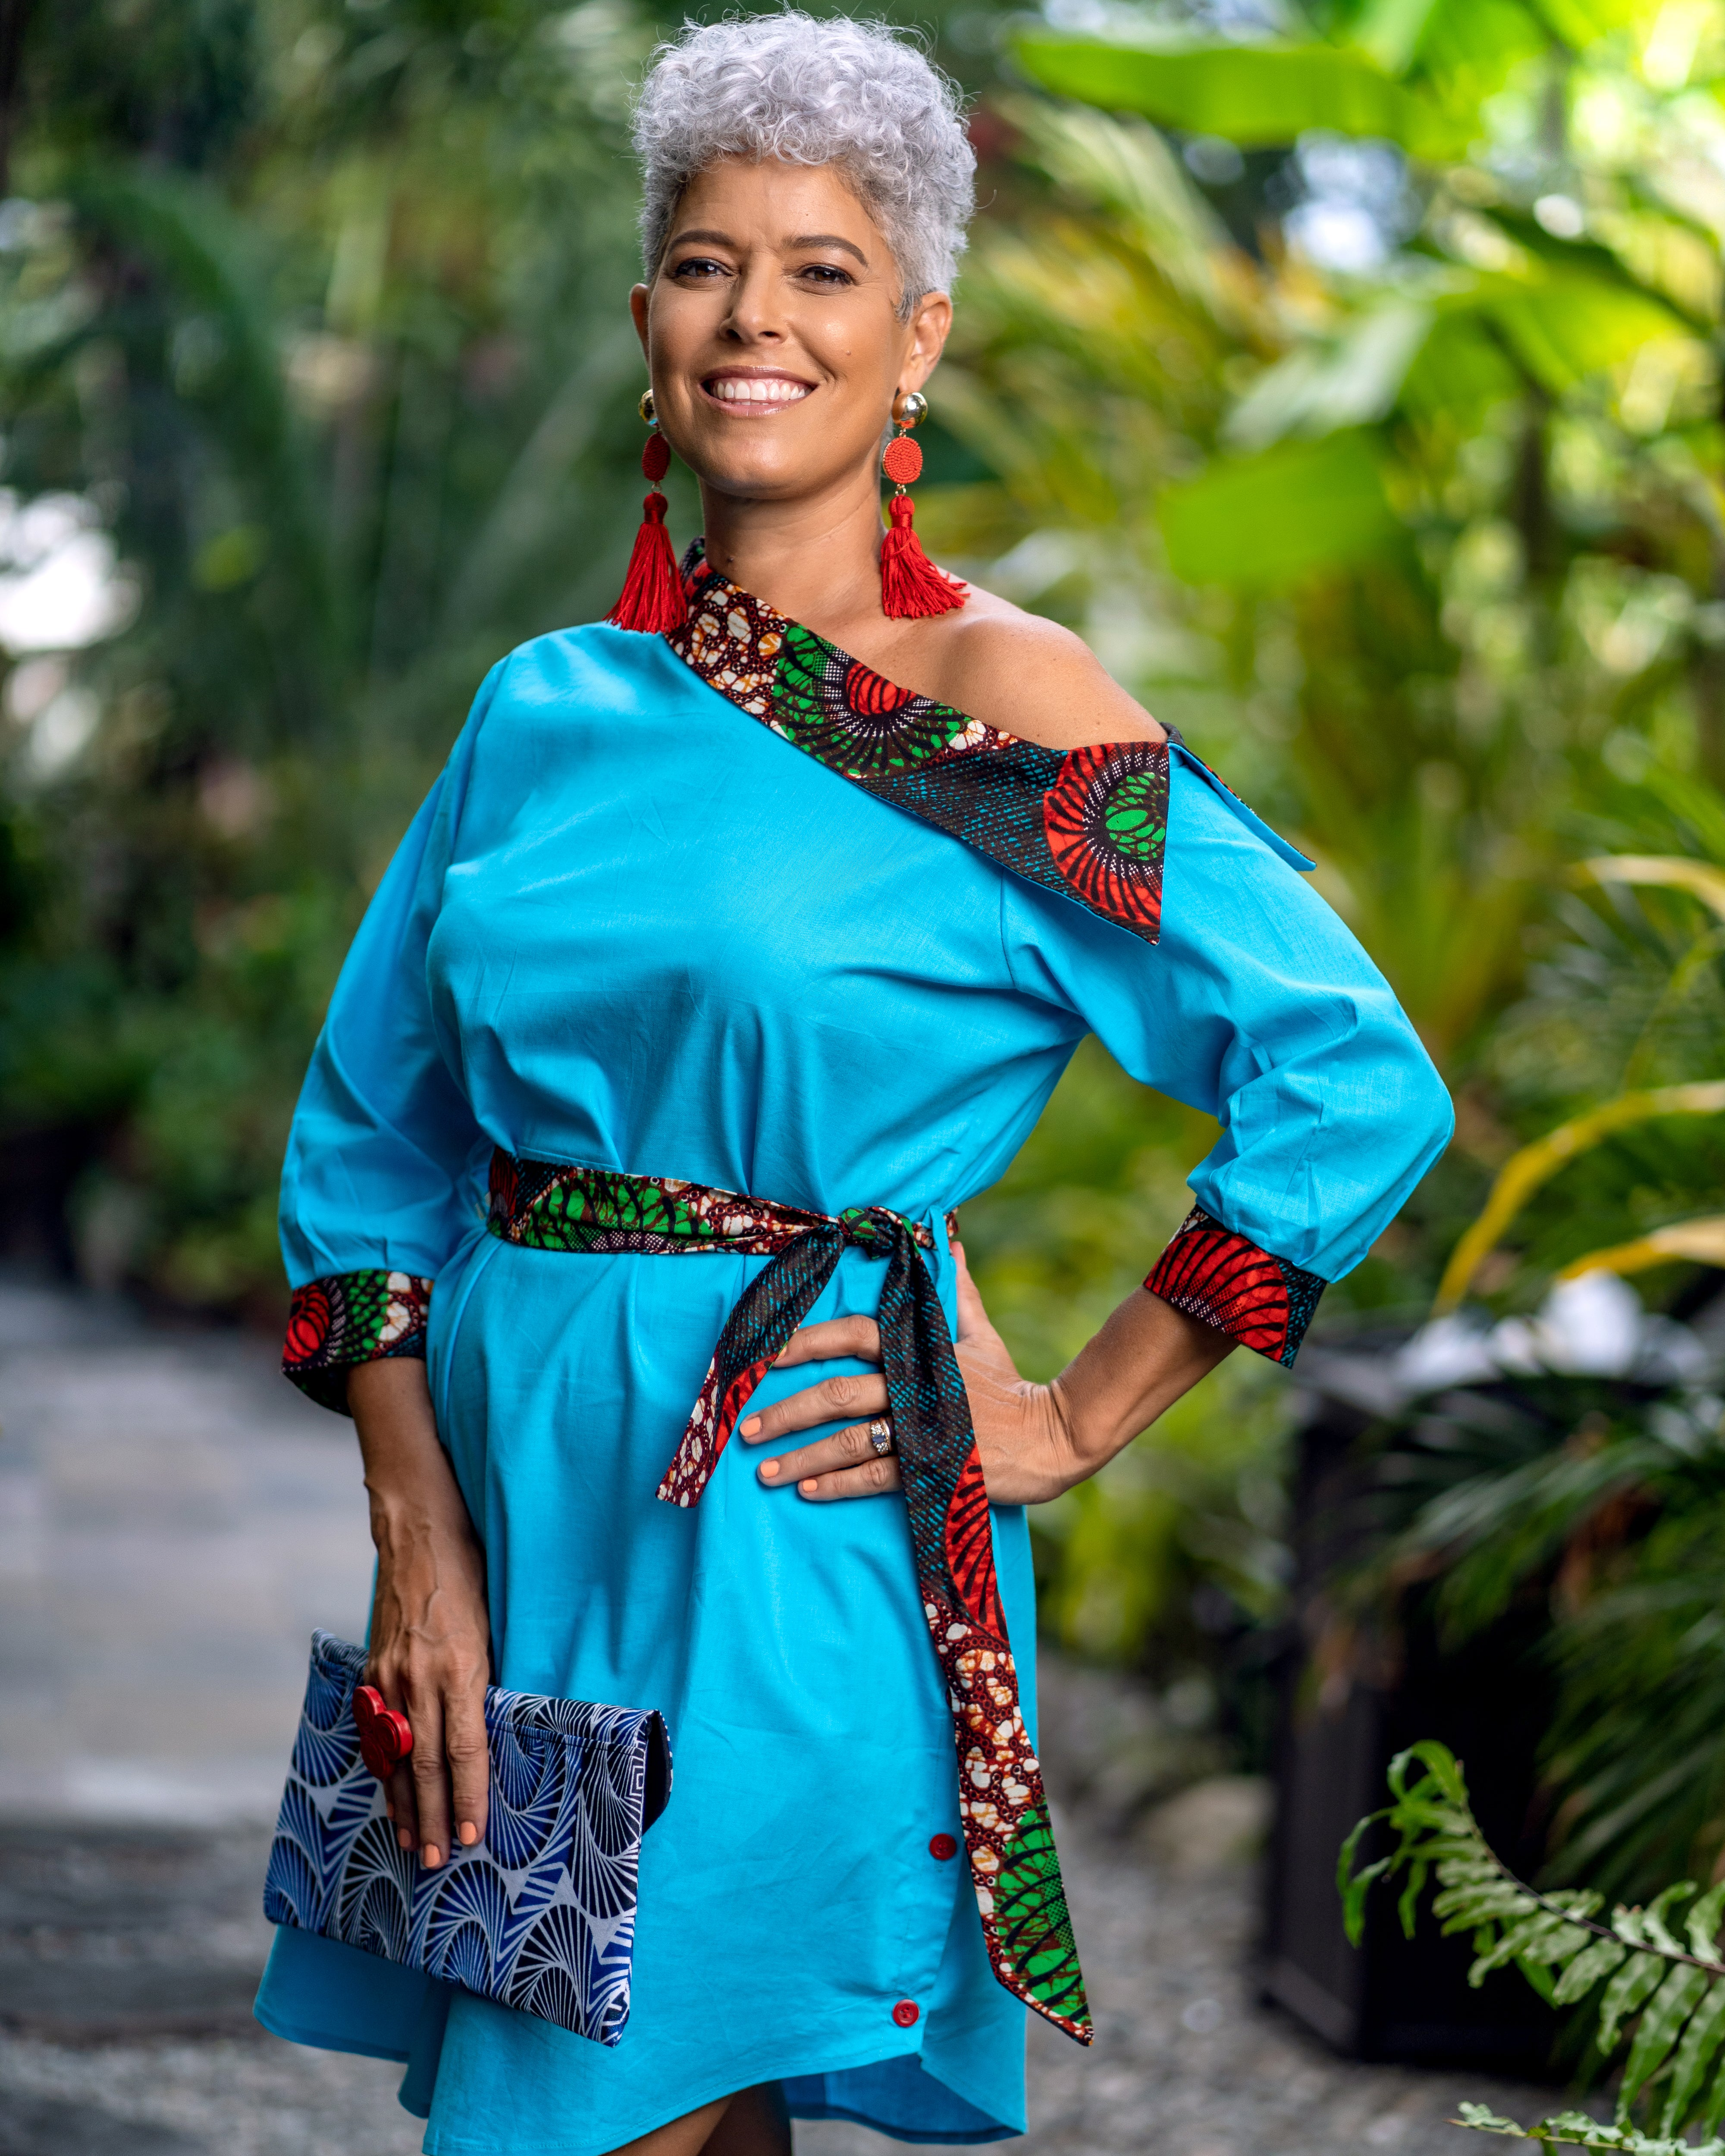 Blue high low, off the shoulder dress with tribal/african print detailing and tied waist